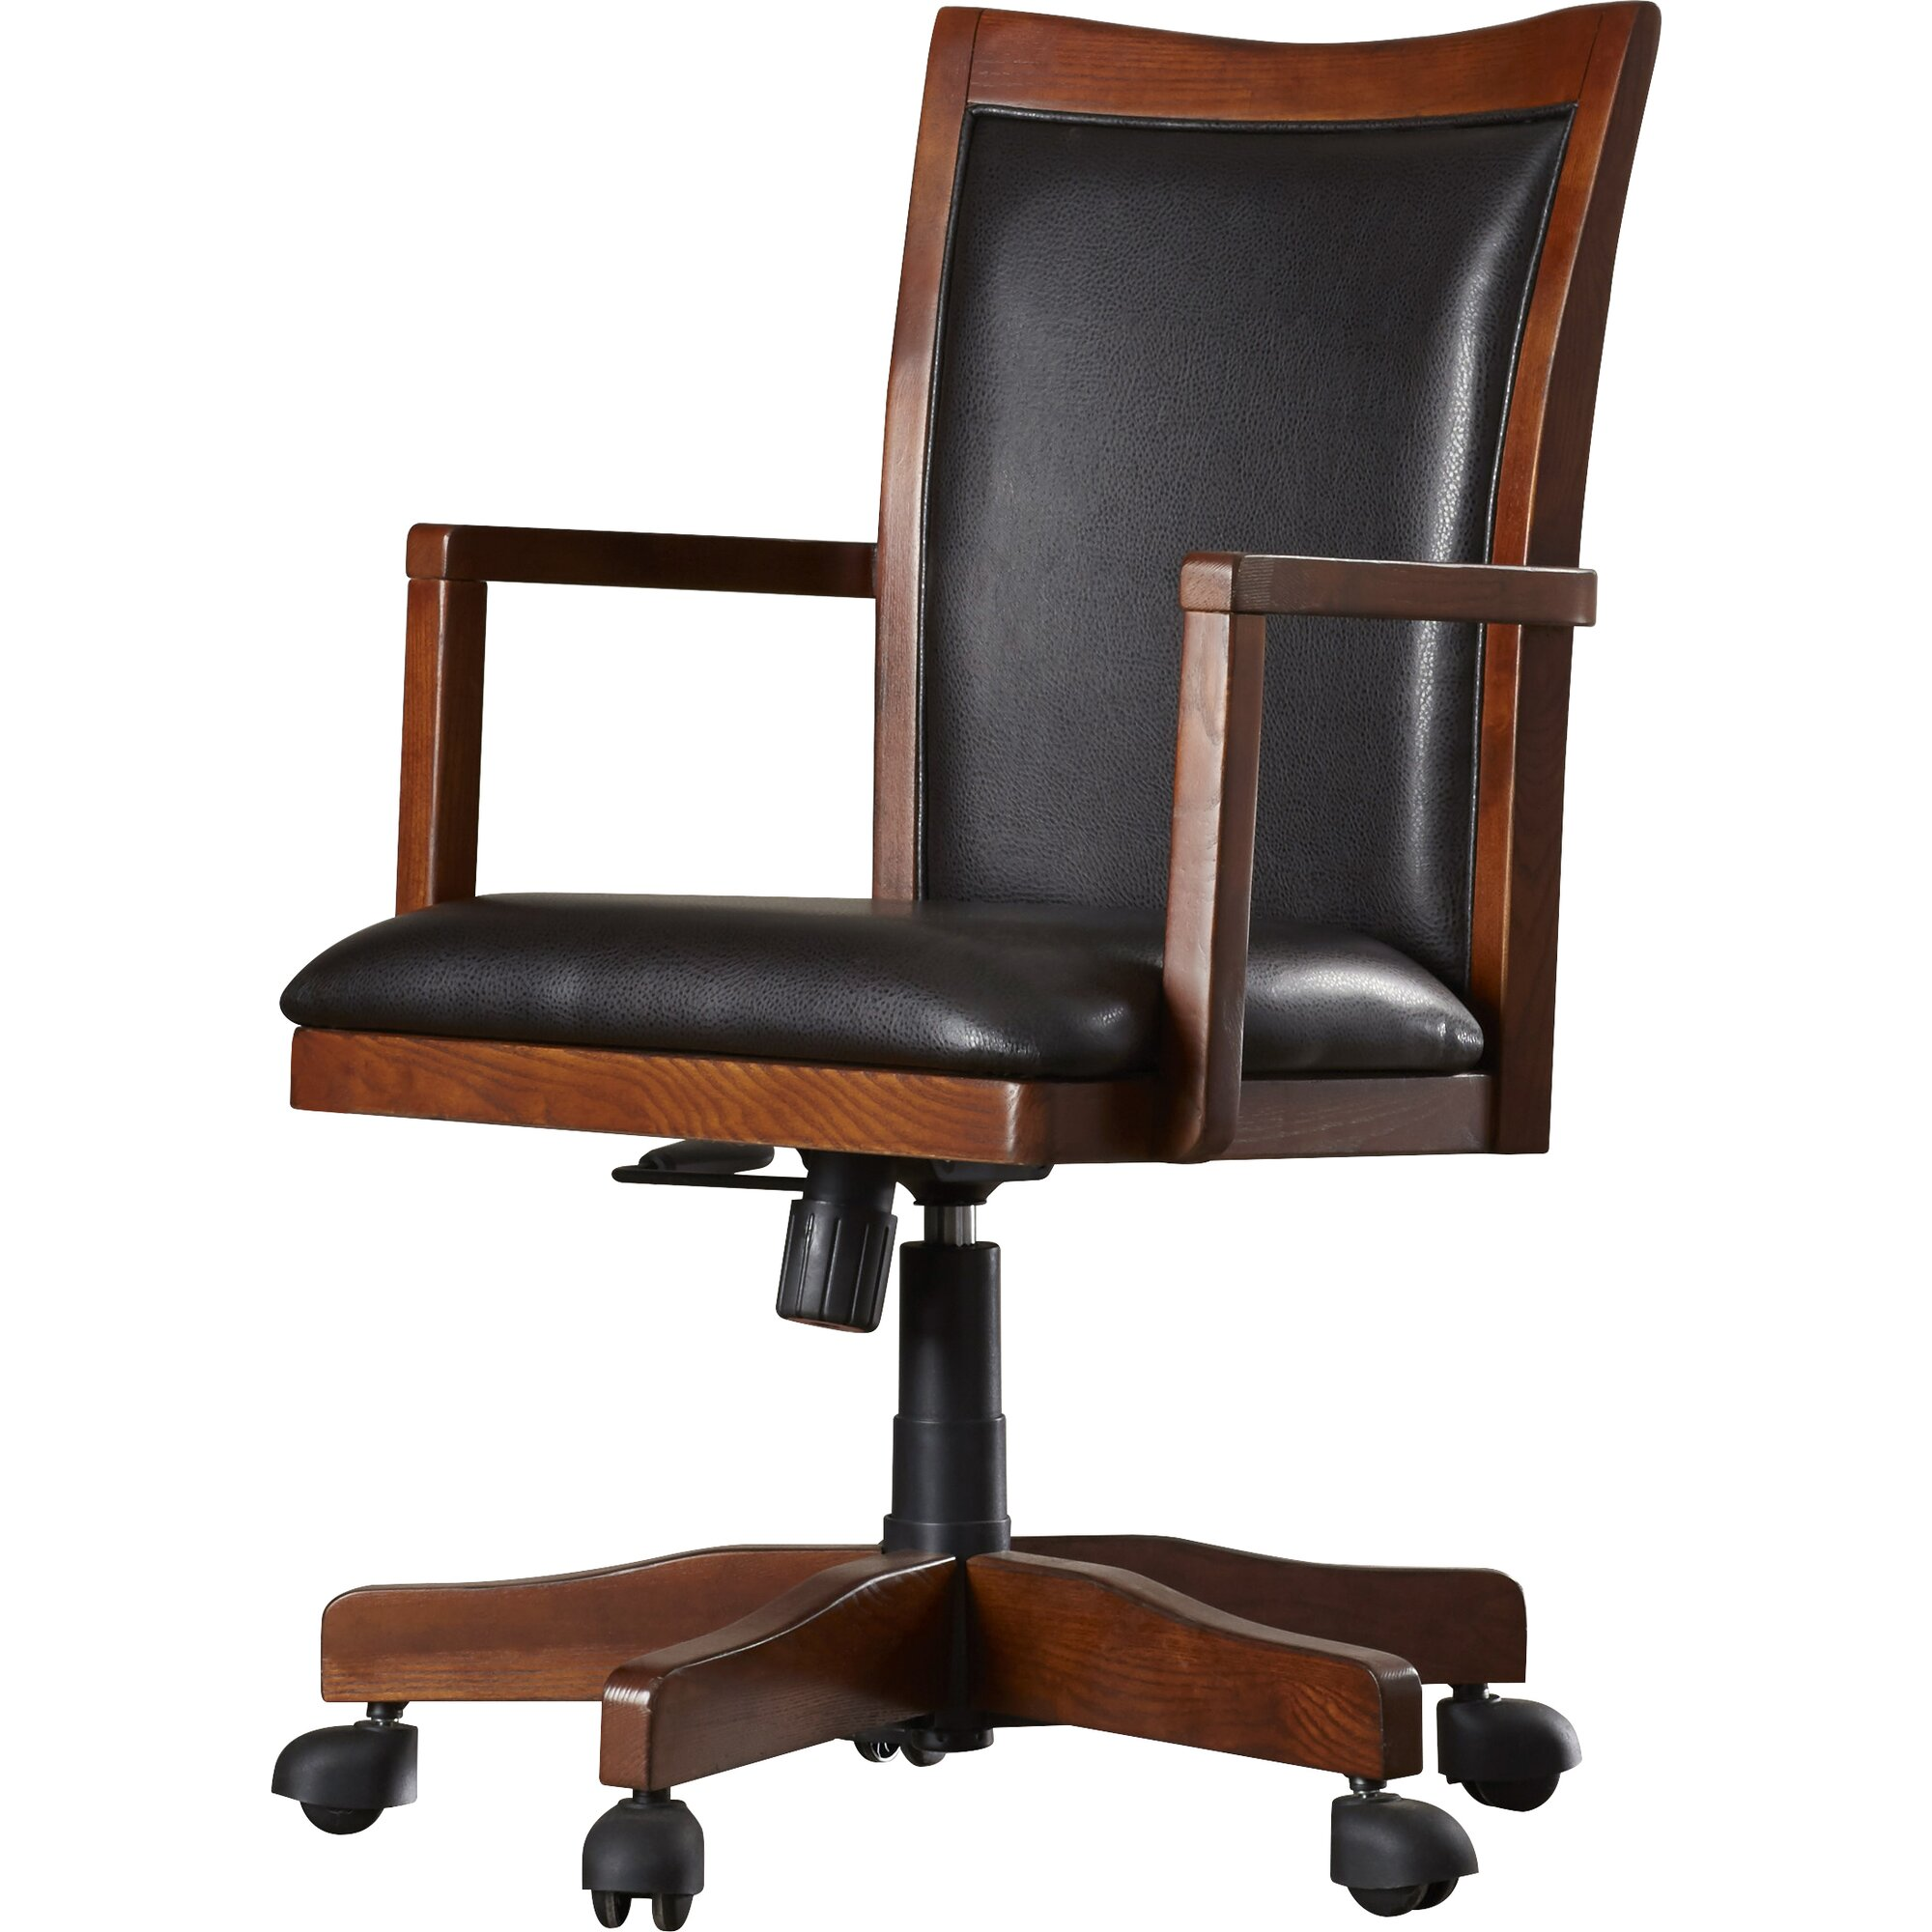 Loon peak flagstaff bankers chair reviews Peak office furniture